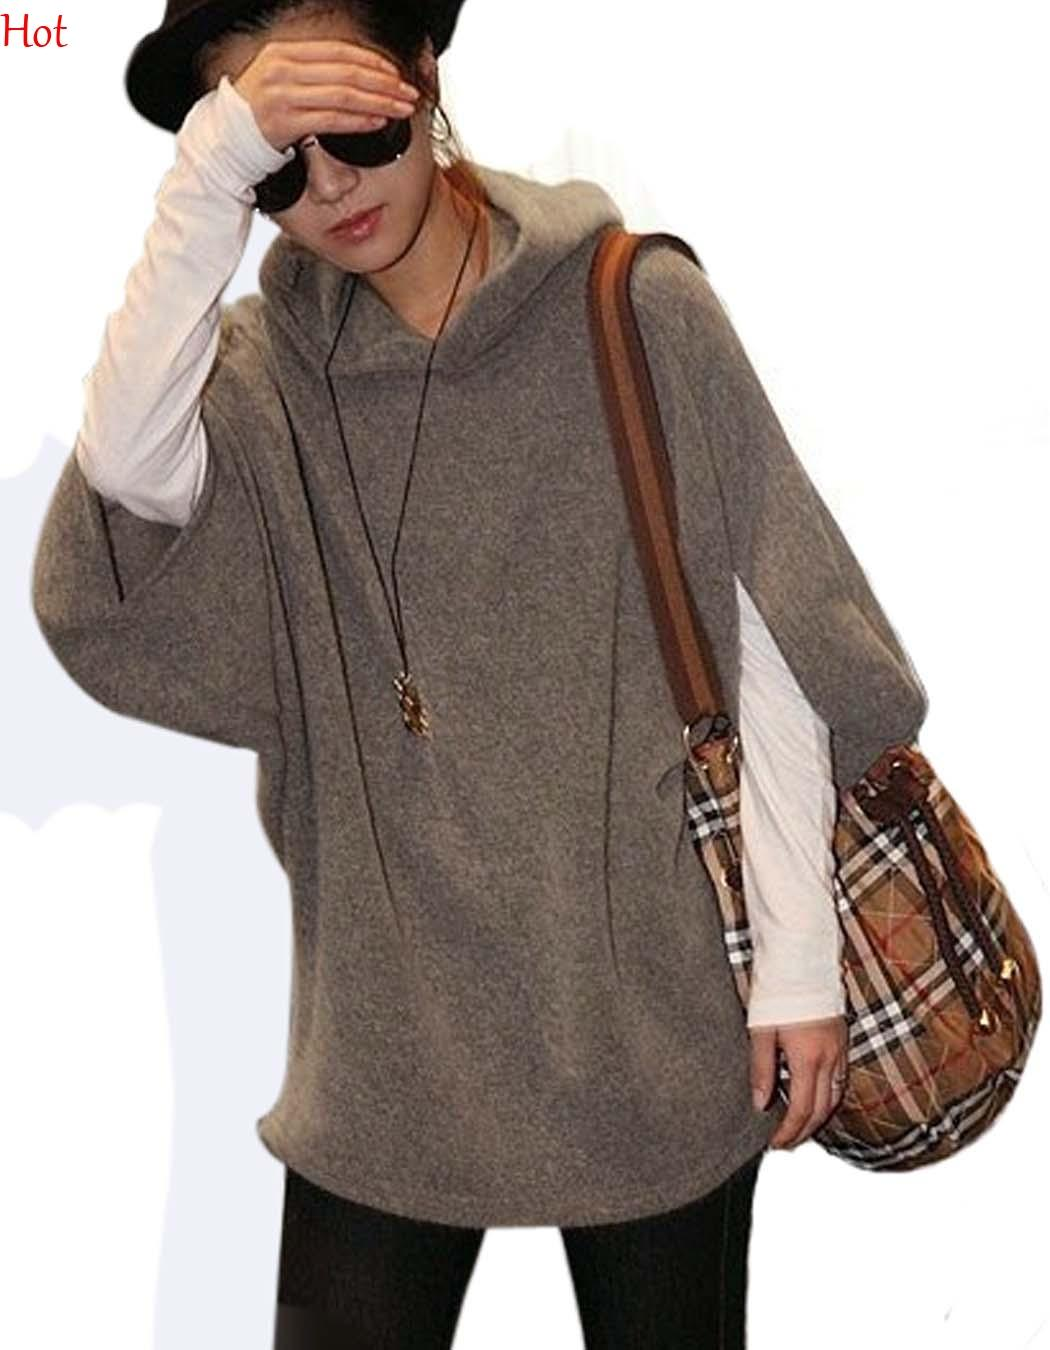 ed6593c8a0 2019 2016 Hot Fall Spring Sweaters Women Clothing Casual Bat Sleeve Sweater  Brushed Loose Pullovers Hooded Sweater Coat Grey Khaki Hoodies 7384 From ...